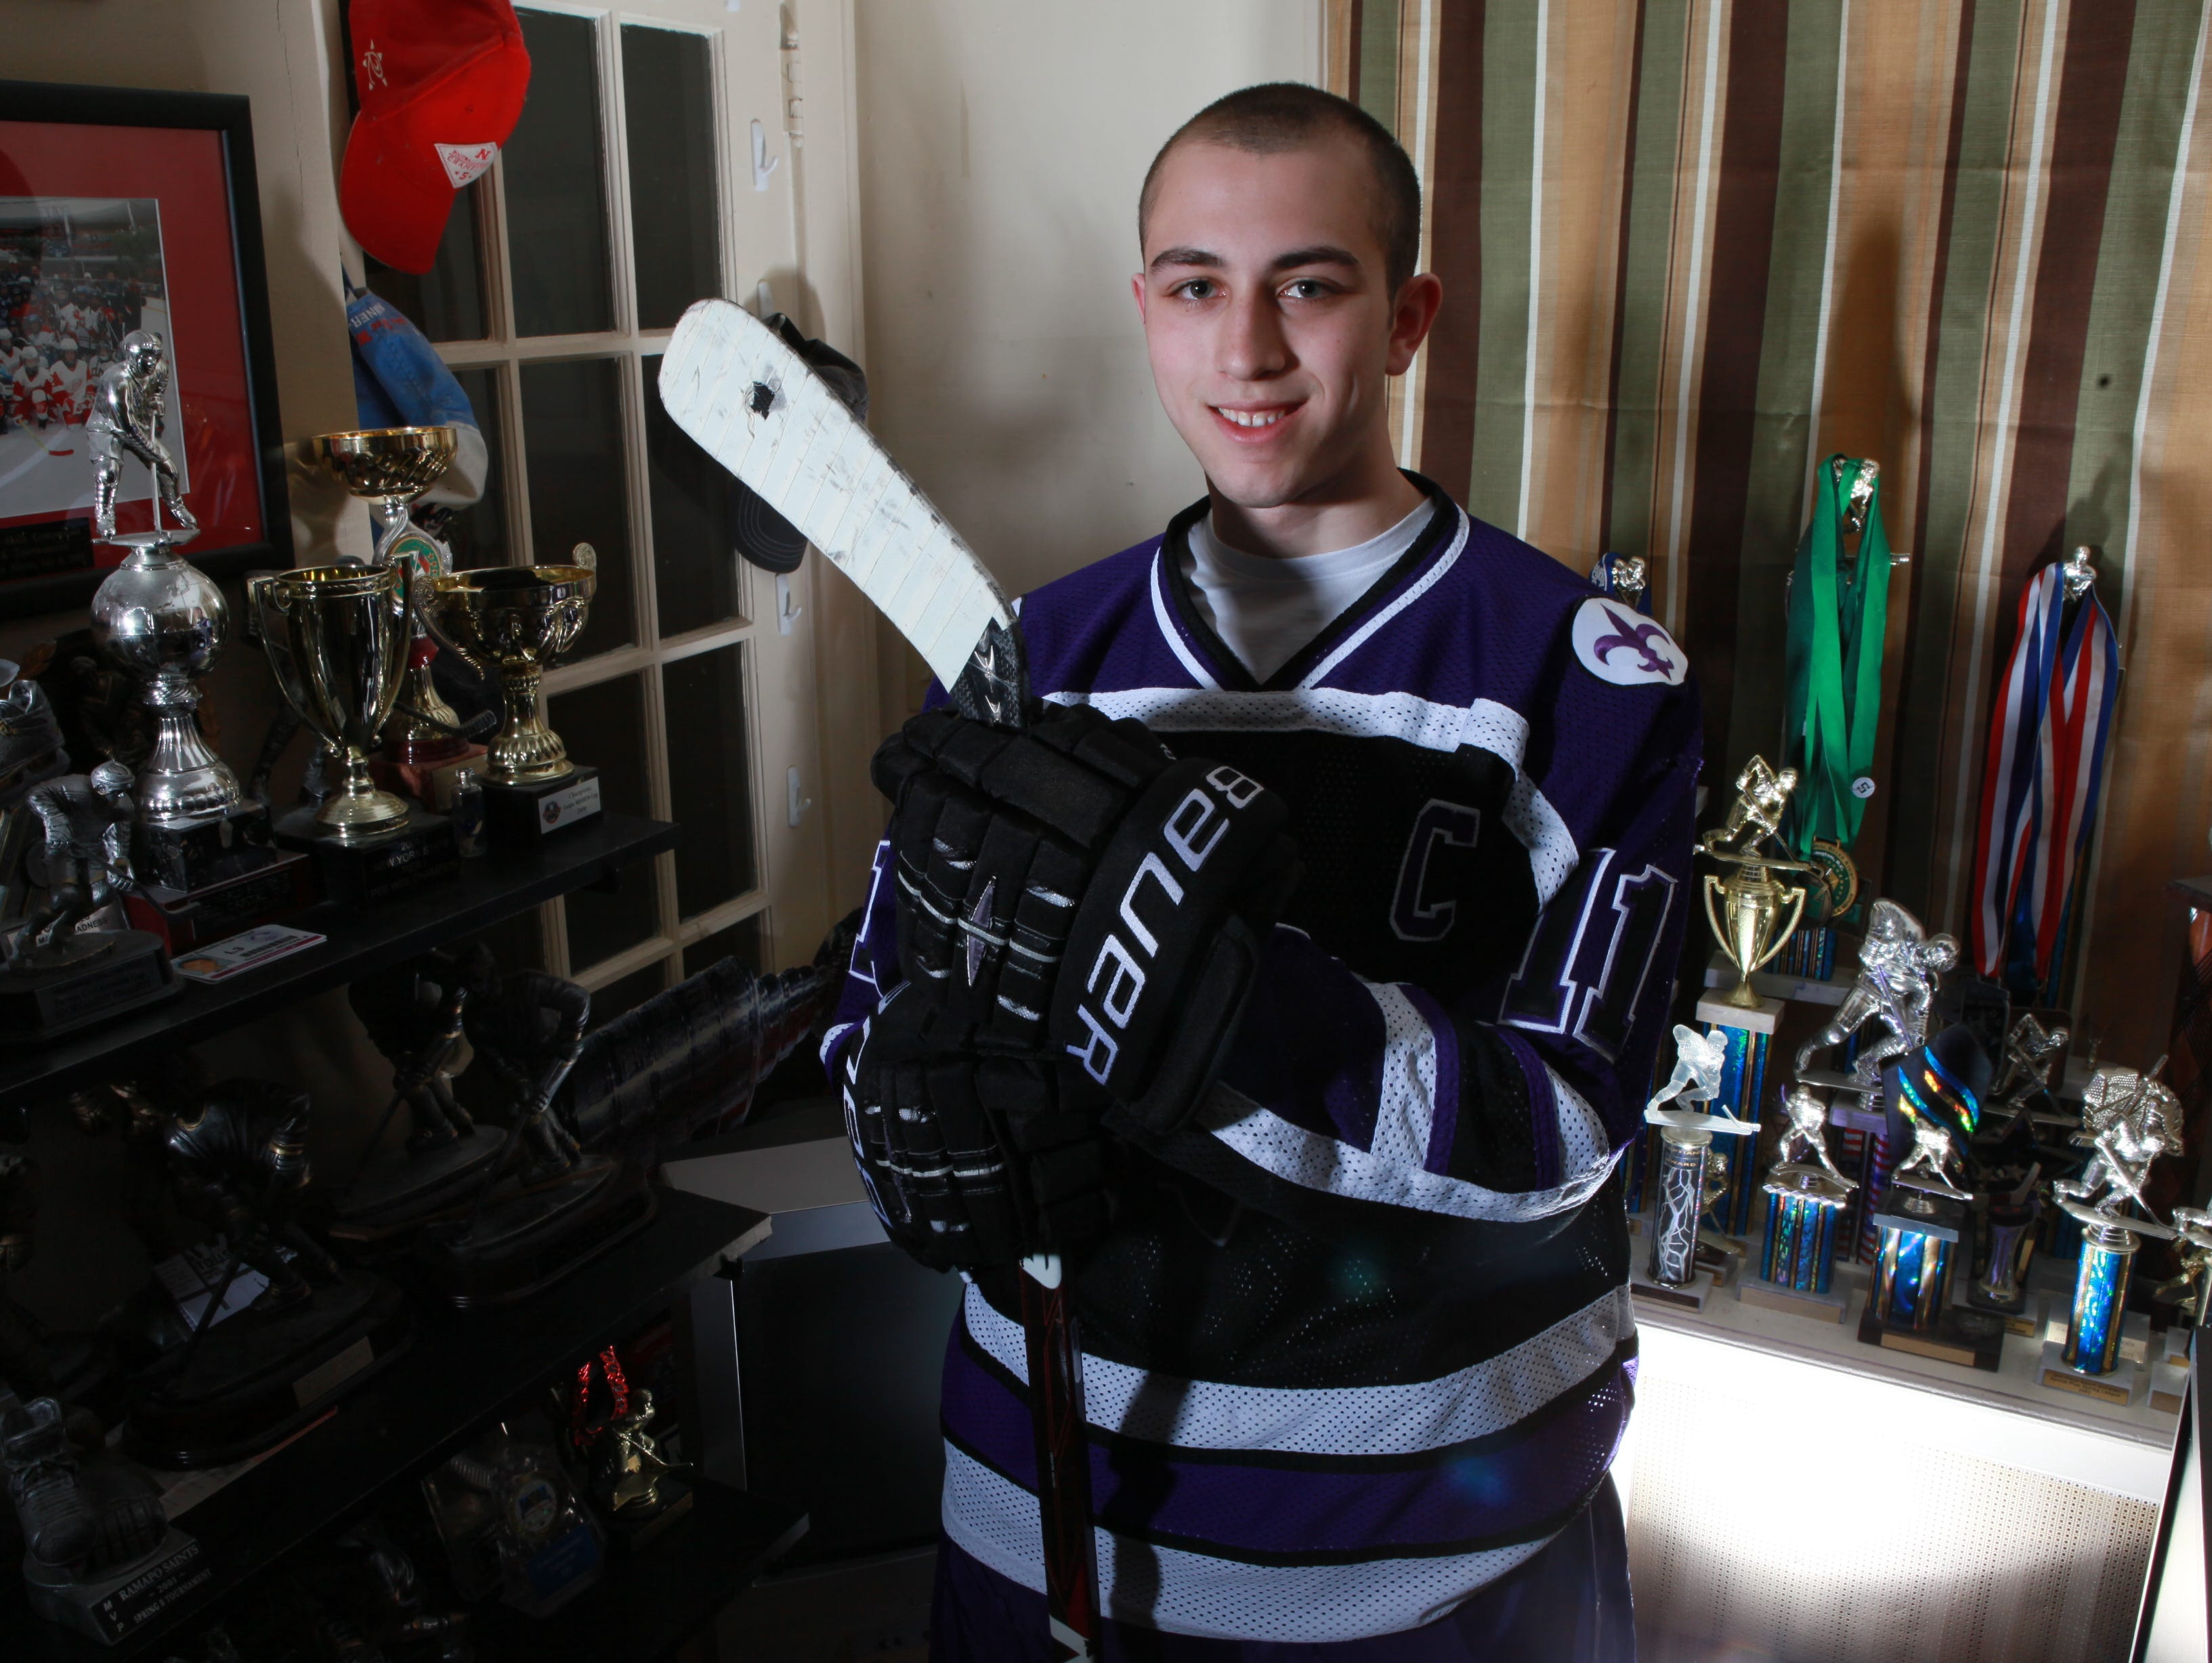 """Richie Prunesti was the Westchester hockey Player of the Year in 2011. He continued to play junior hockey but was eventually worn down by the grind. """" I was missing my friends. I was tired. I was looking for a chance to relax. I quit. That might be the biggest mistake I ever made. Looking back on it now, I would give anything to get back in."""""""